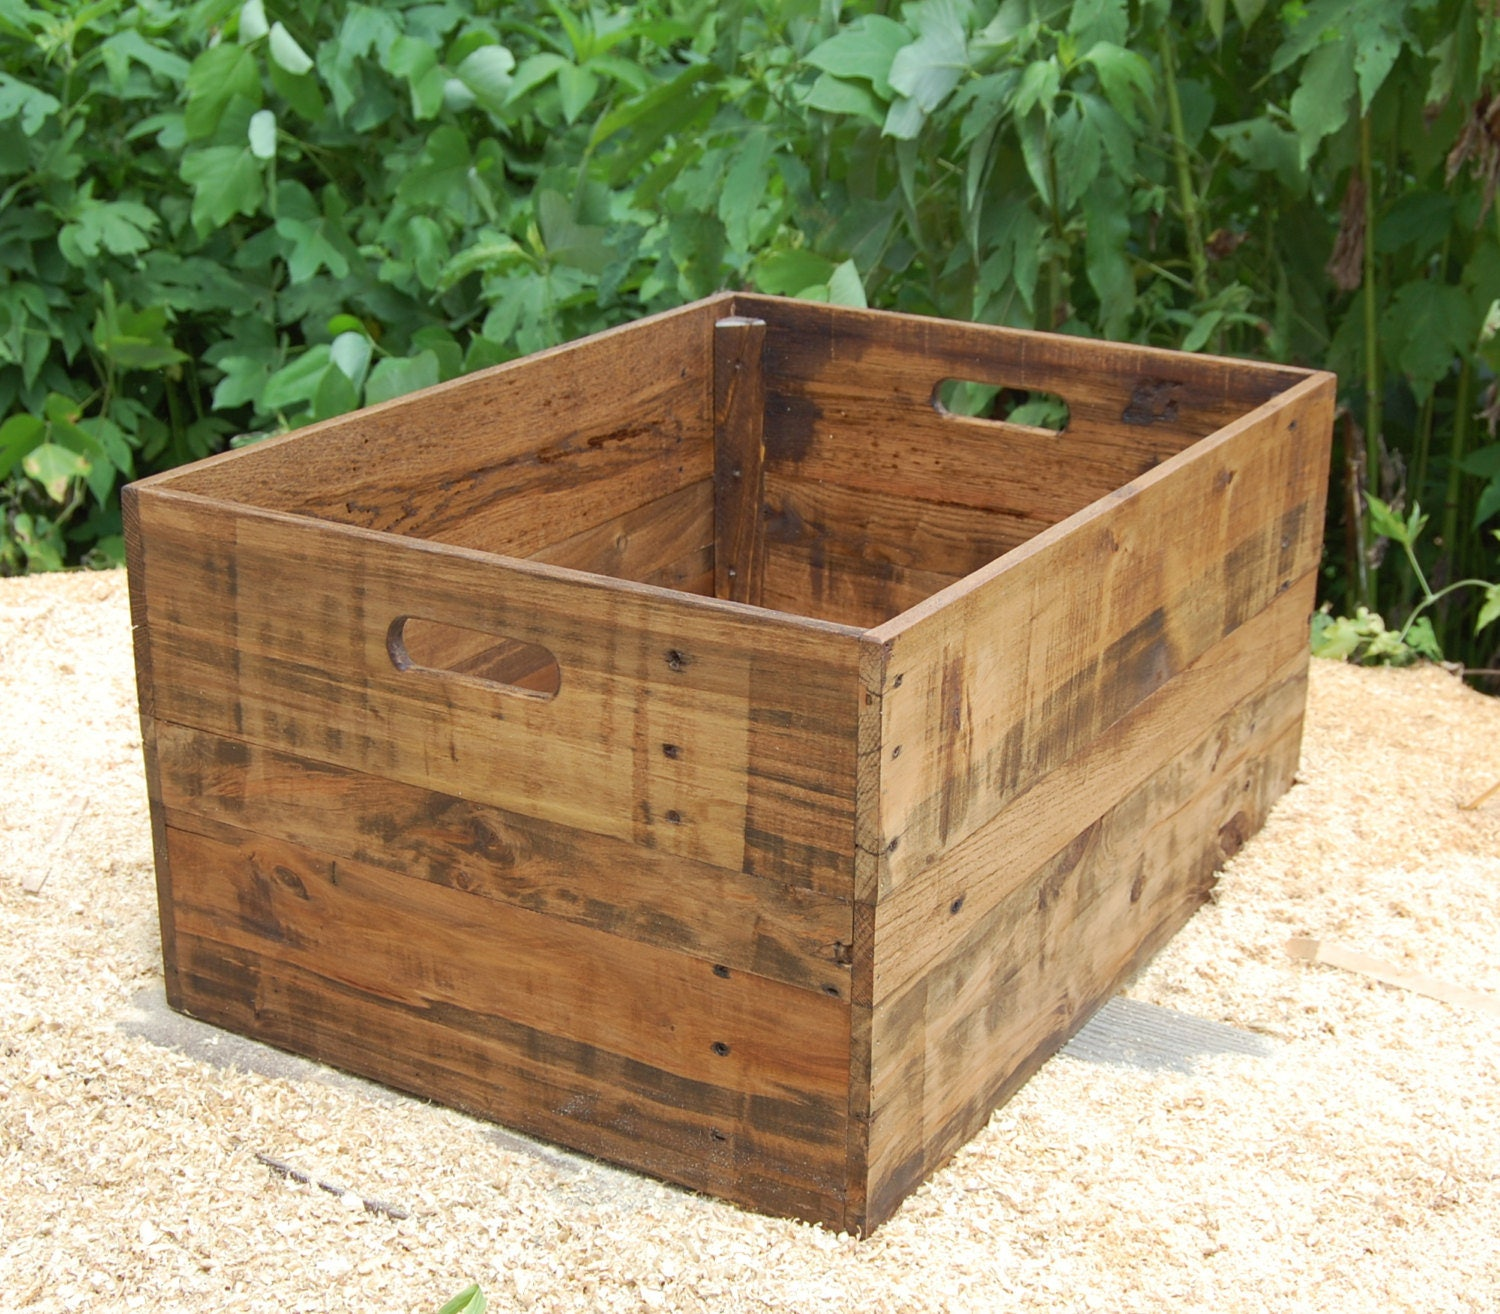 Custom Wooden Crate/ Storage Box/ Crate Table/ Extra Large Crate/ Reclaimed  Wood